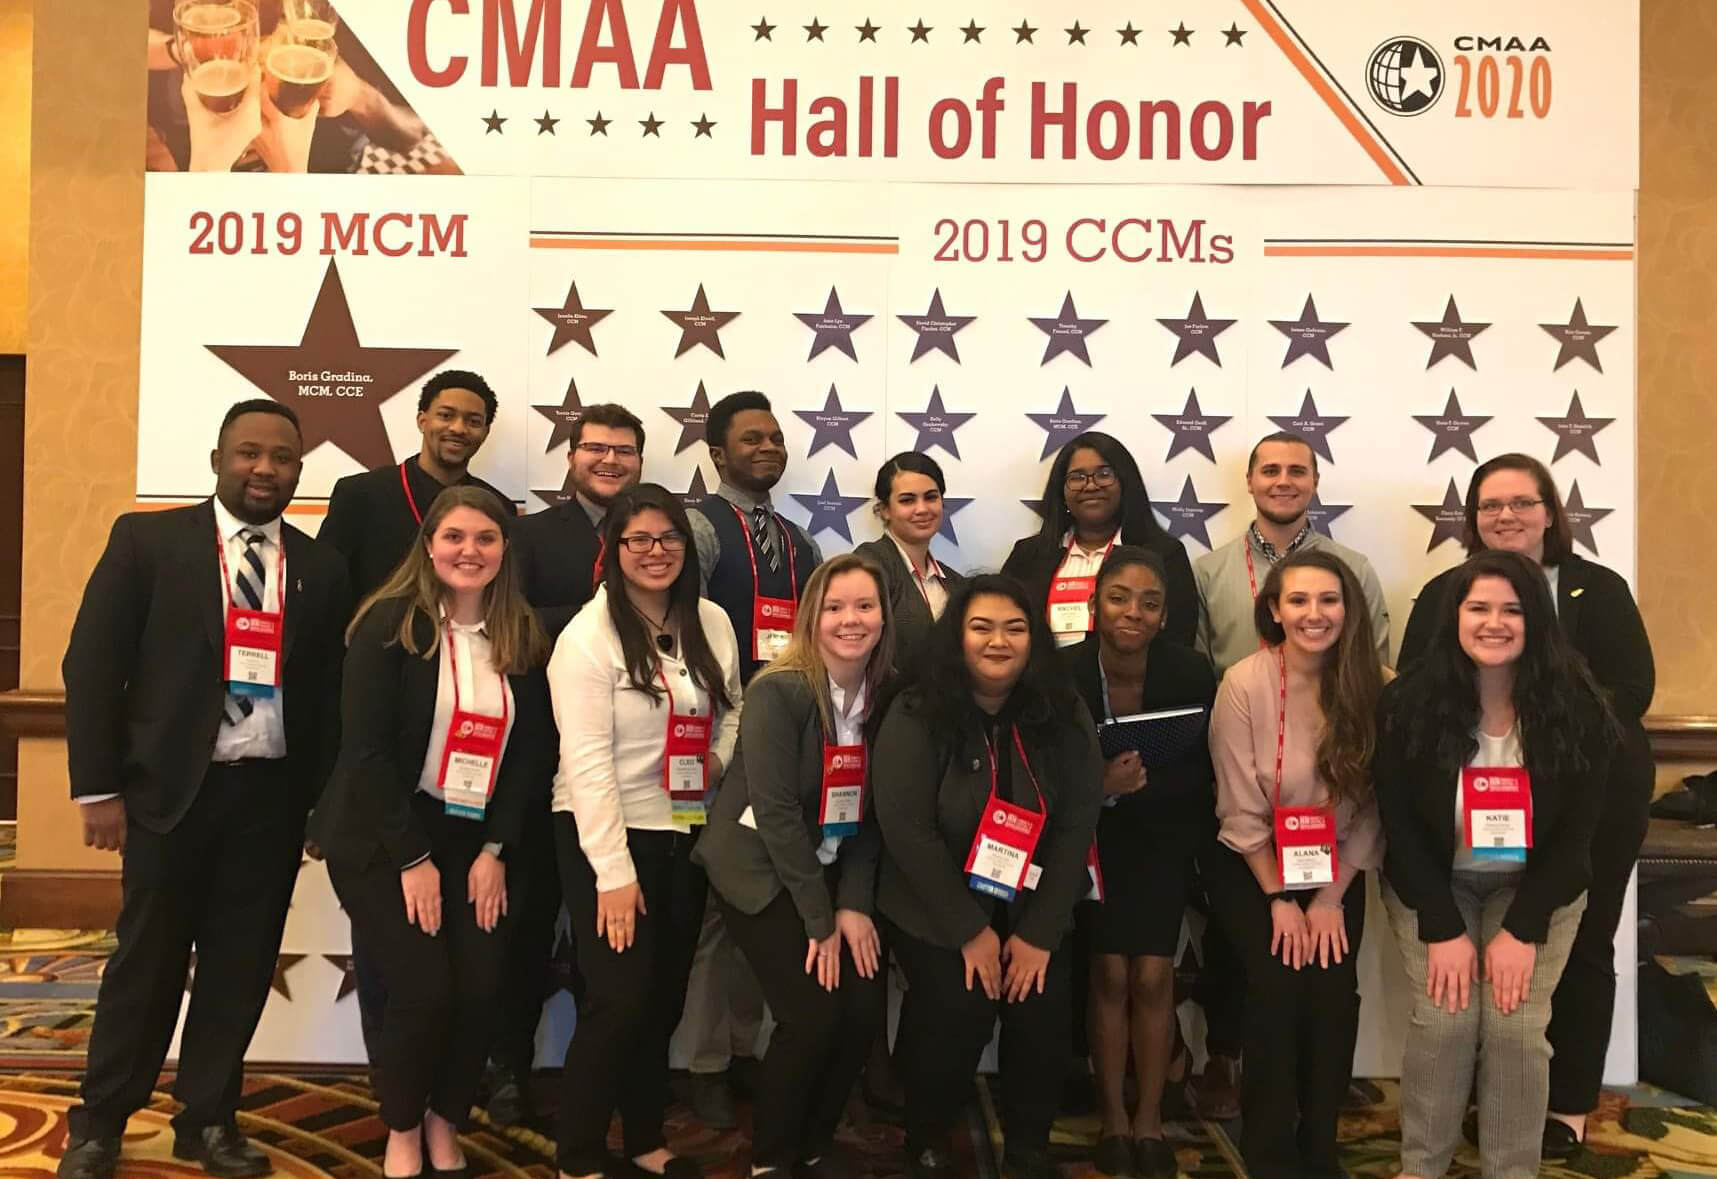 CMAA World Conference & Business Expo 2020